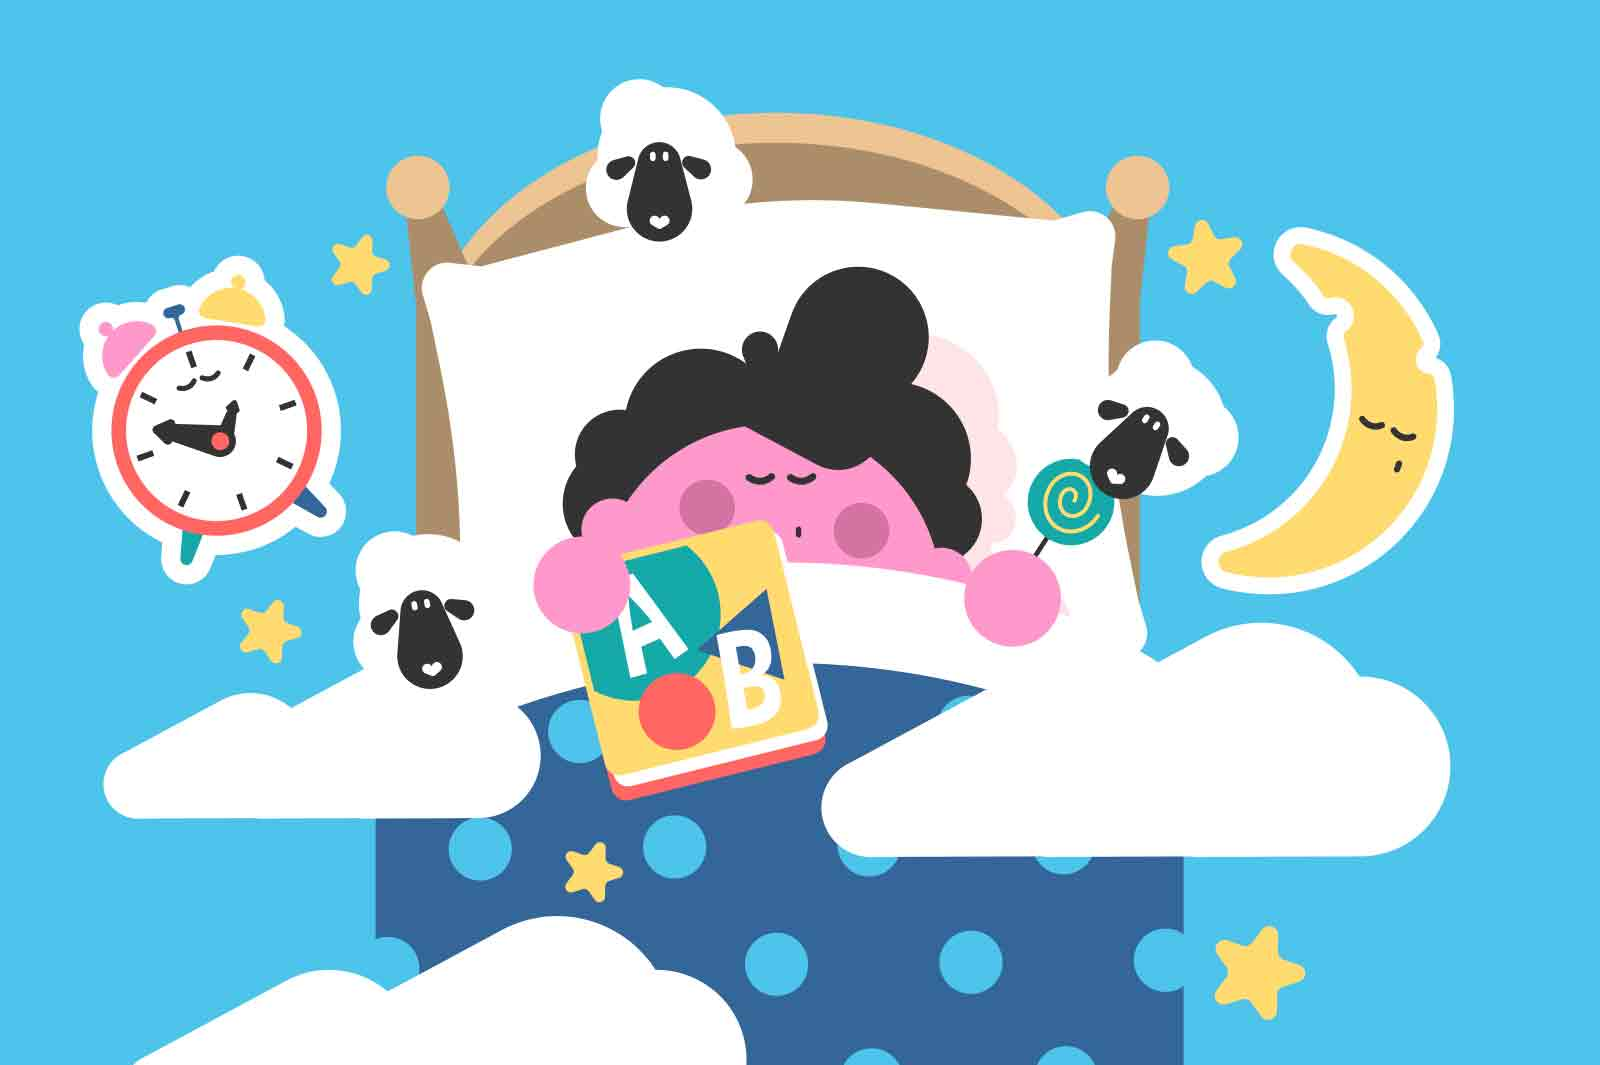 Boy sleeping in bed and dreaming vector illustration. Kid get rest at night with toys flat style. Goodnight, sweet dreams, childhood concept